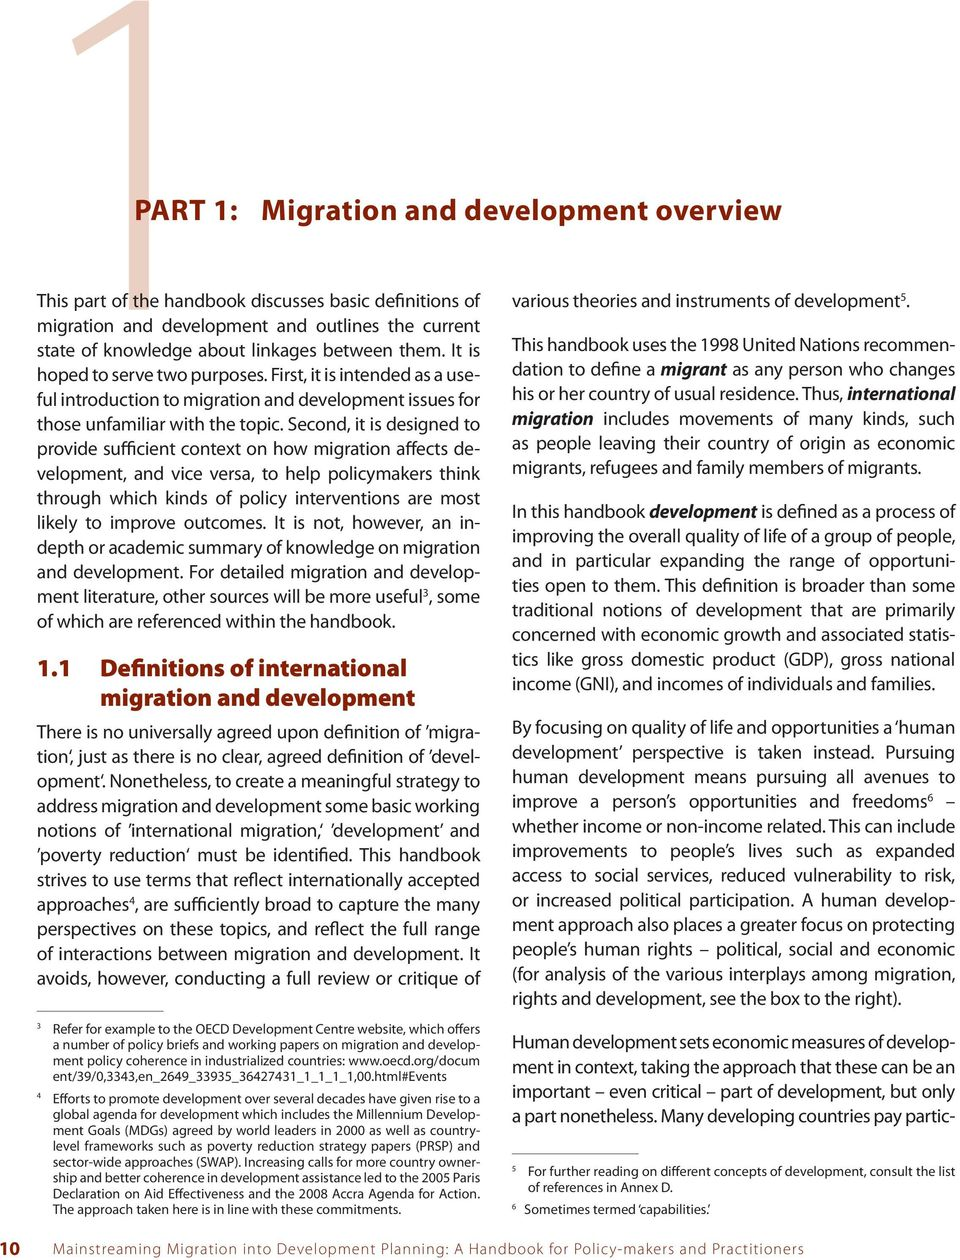 Second, it is designed to provide sufficient context on how migration affects development, and vice versa, to help policymakers think through which kinds of policy interventions are most likely to